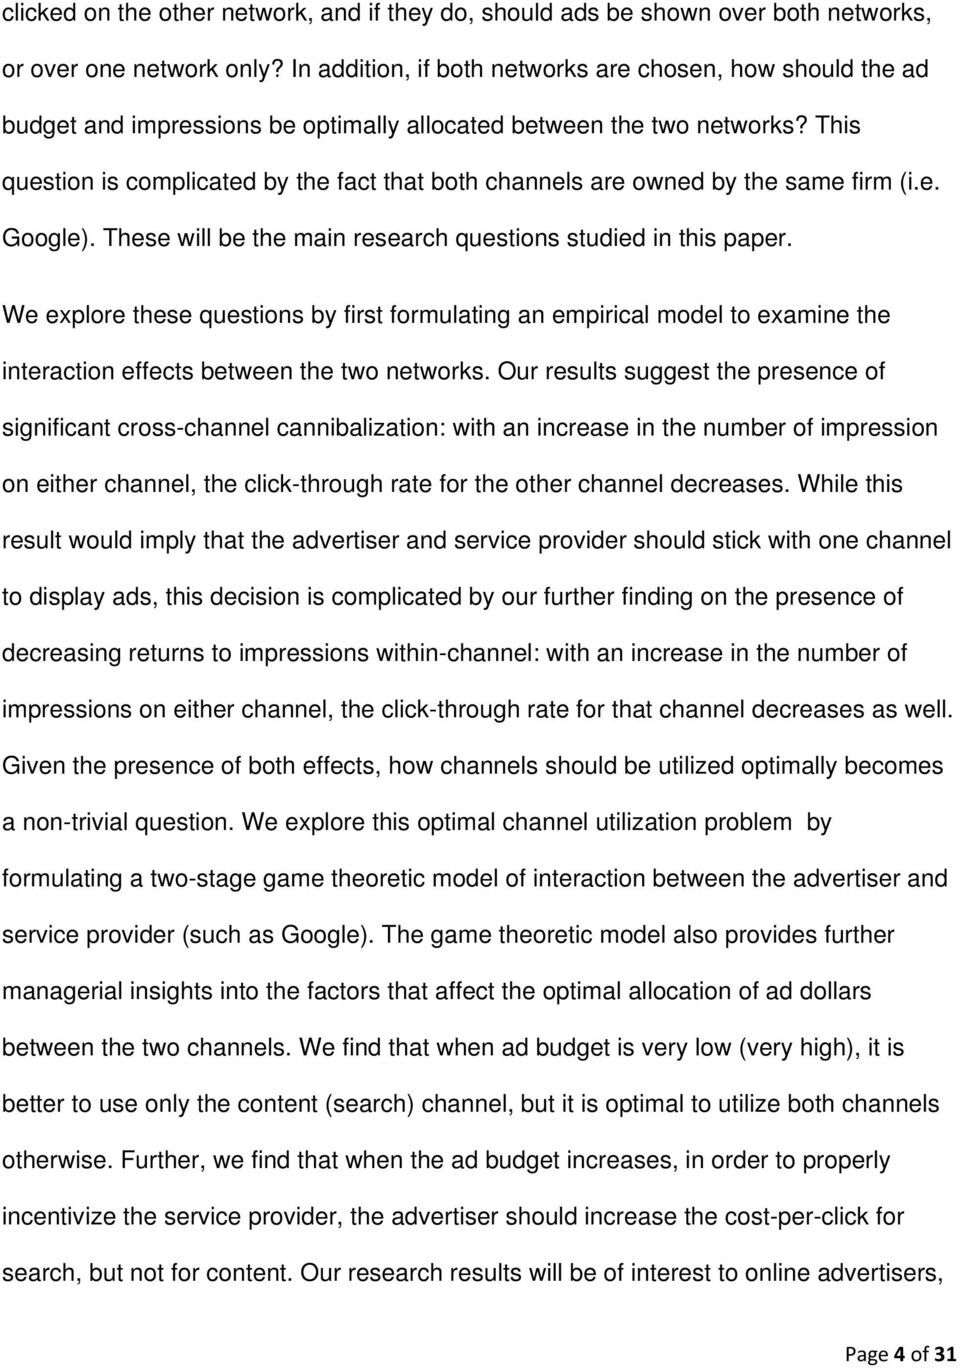 This question is complicated by the fact that both channels are owned by the same firm (i.e. Google). These will be the main research questions studied in this paper.